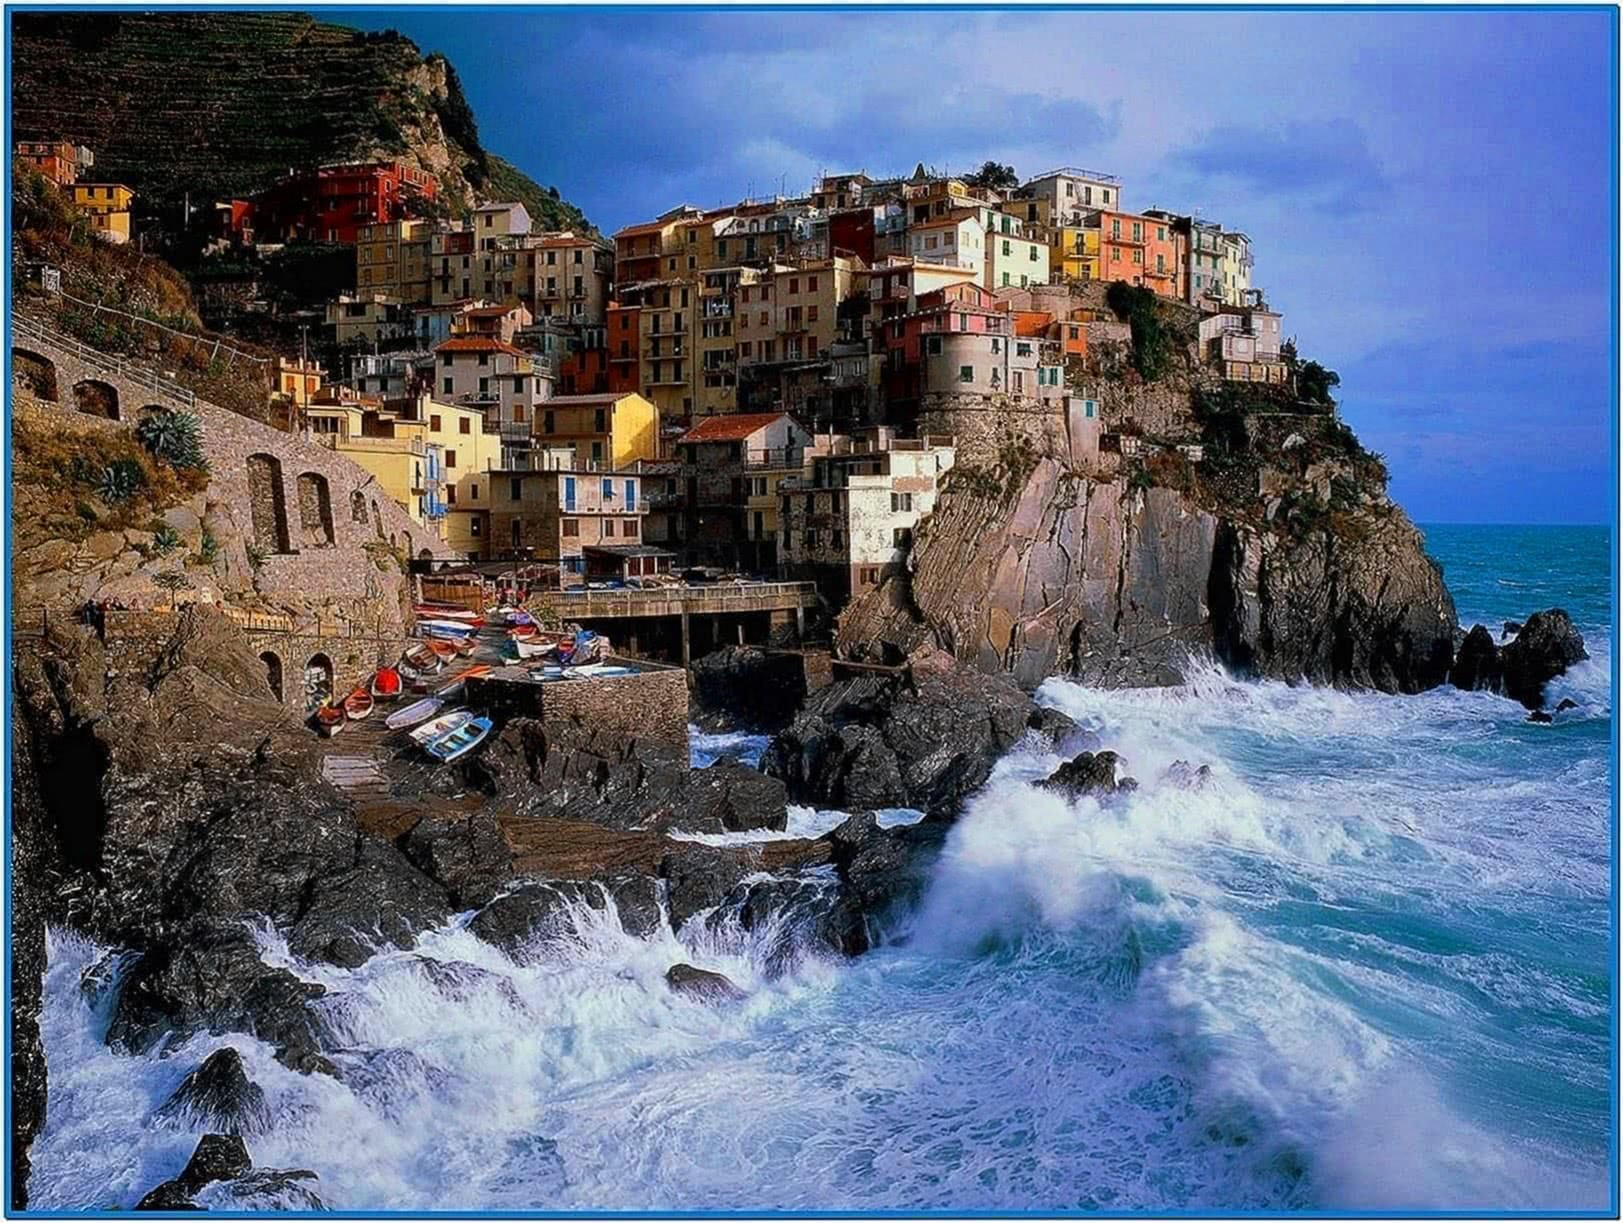 Pictures of Italy Screensaver